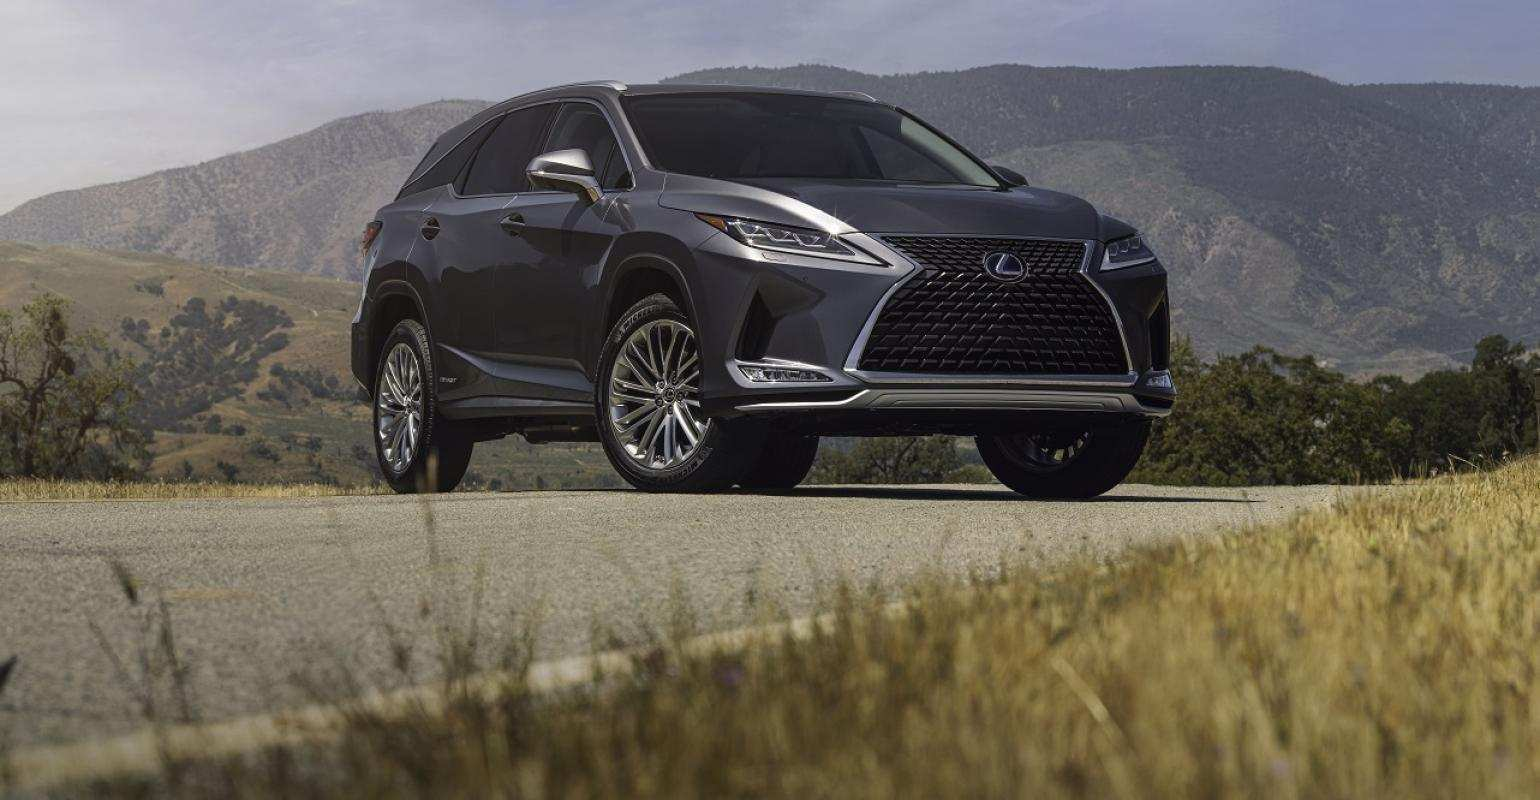 48 All New Lexus Rx 350 Year 2020 Specs and Review by Lexus Rx 350 Year 2020